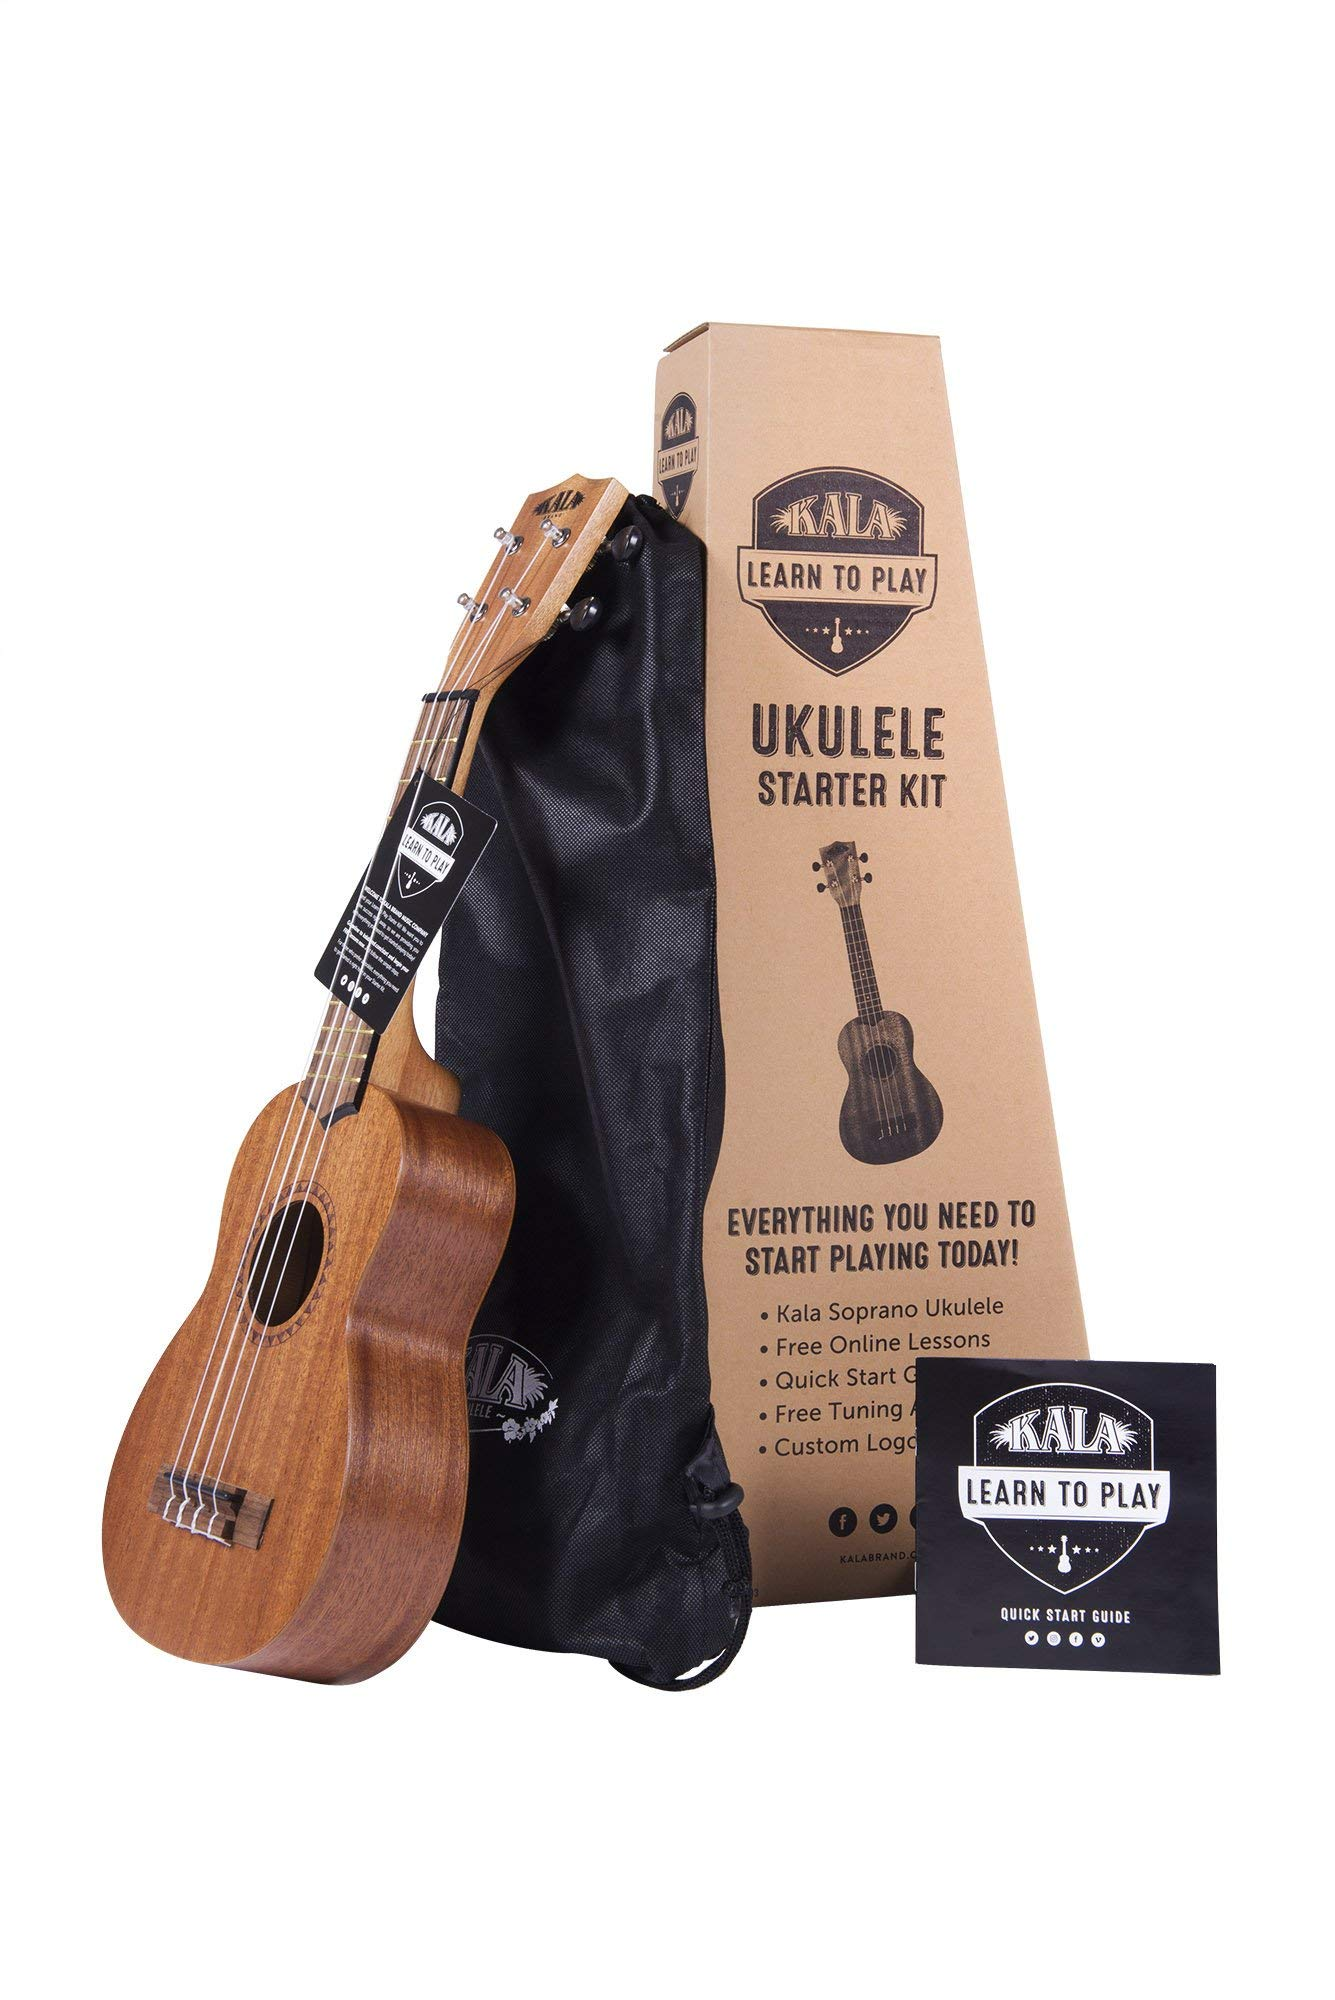 Kala Official Learn to Play Ukulele Soprano Starter Kit, Satin Mahogany - Includes online lessons, tuner app, and booklet (KALA-LTP-S) (Renewed) by Kala